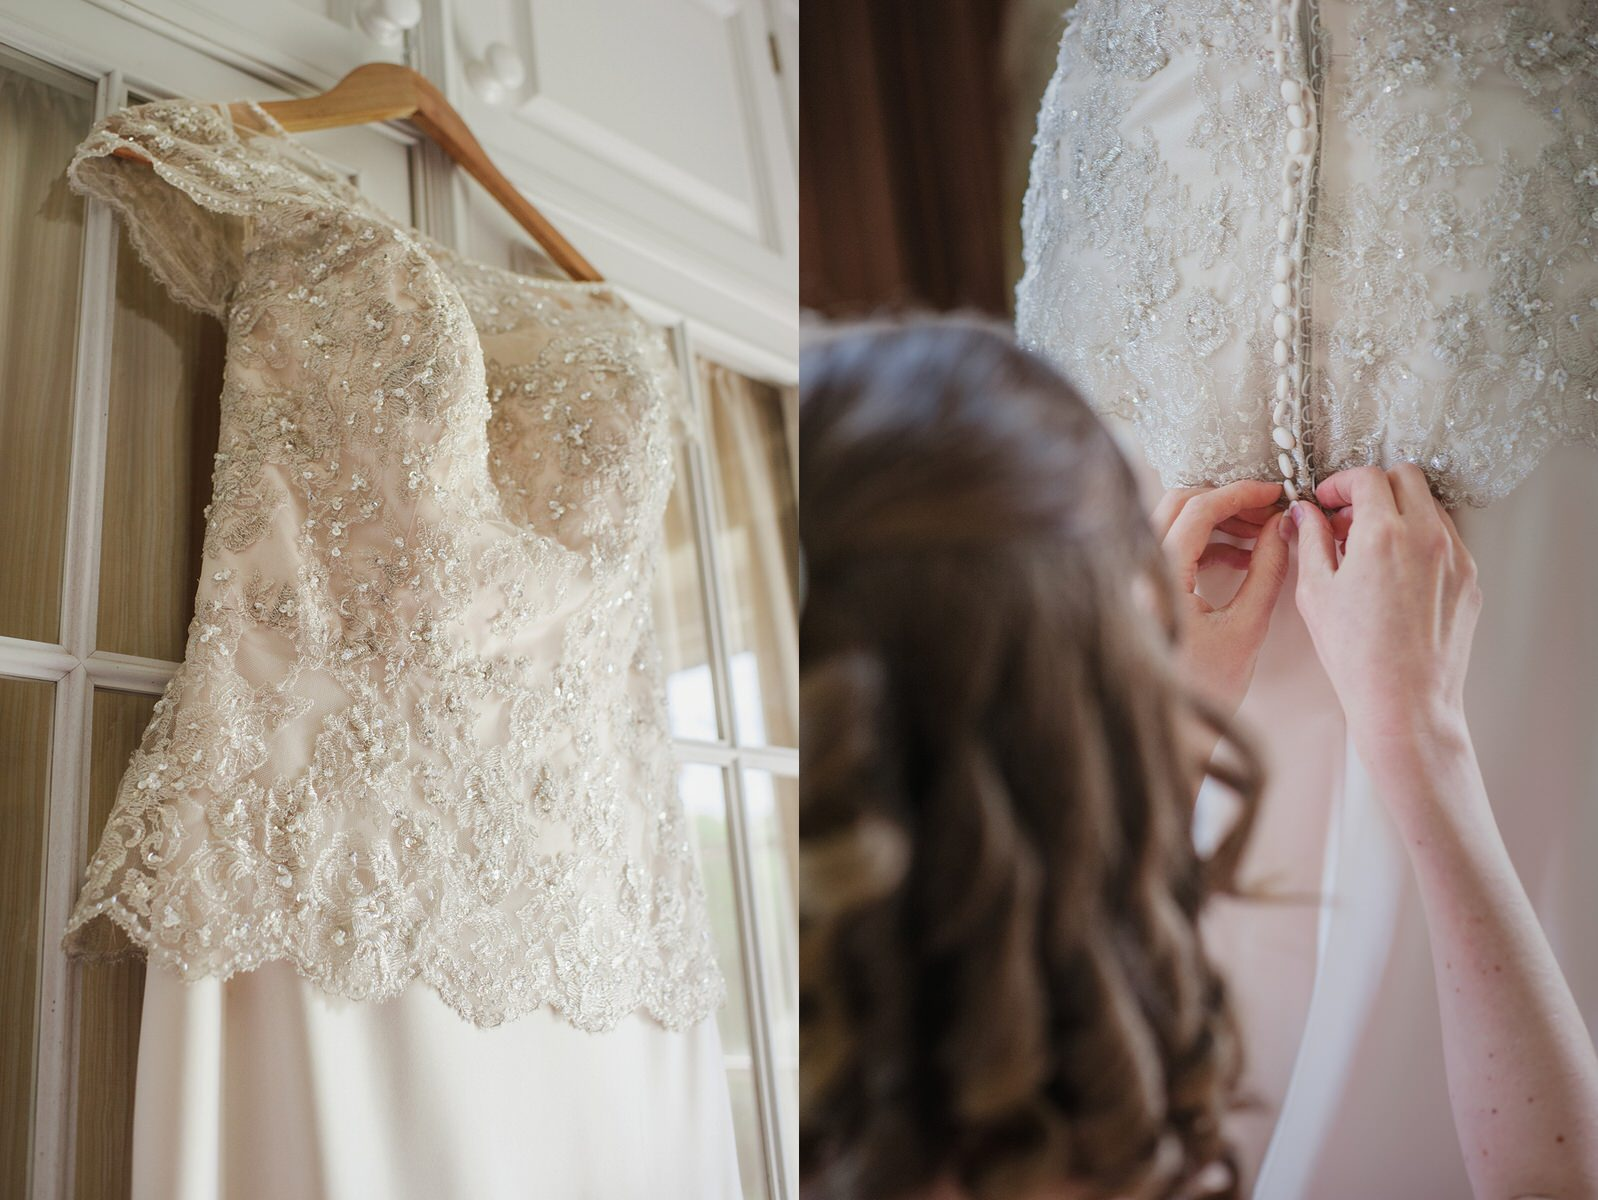 Herons Farm wedding lace wedding dress